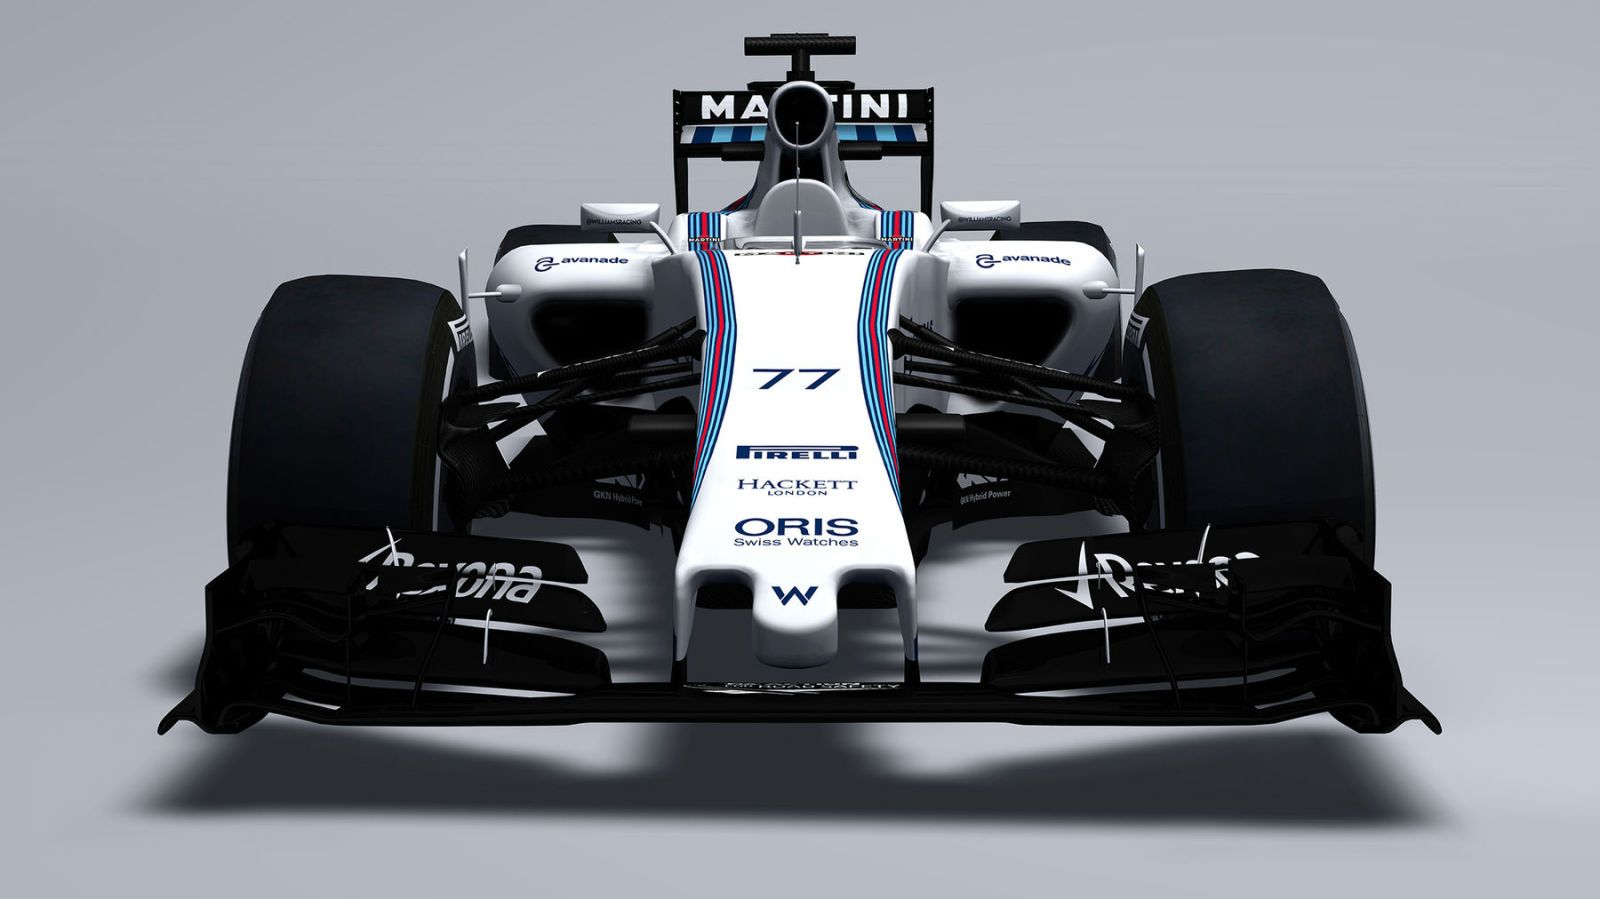 Here's the 2015 Williams Martini Racing Mercedes FW37